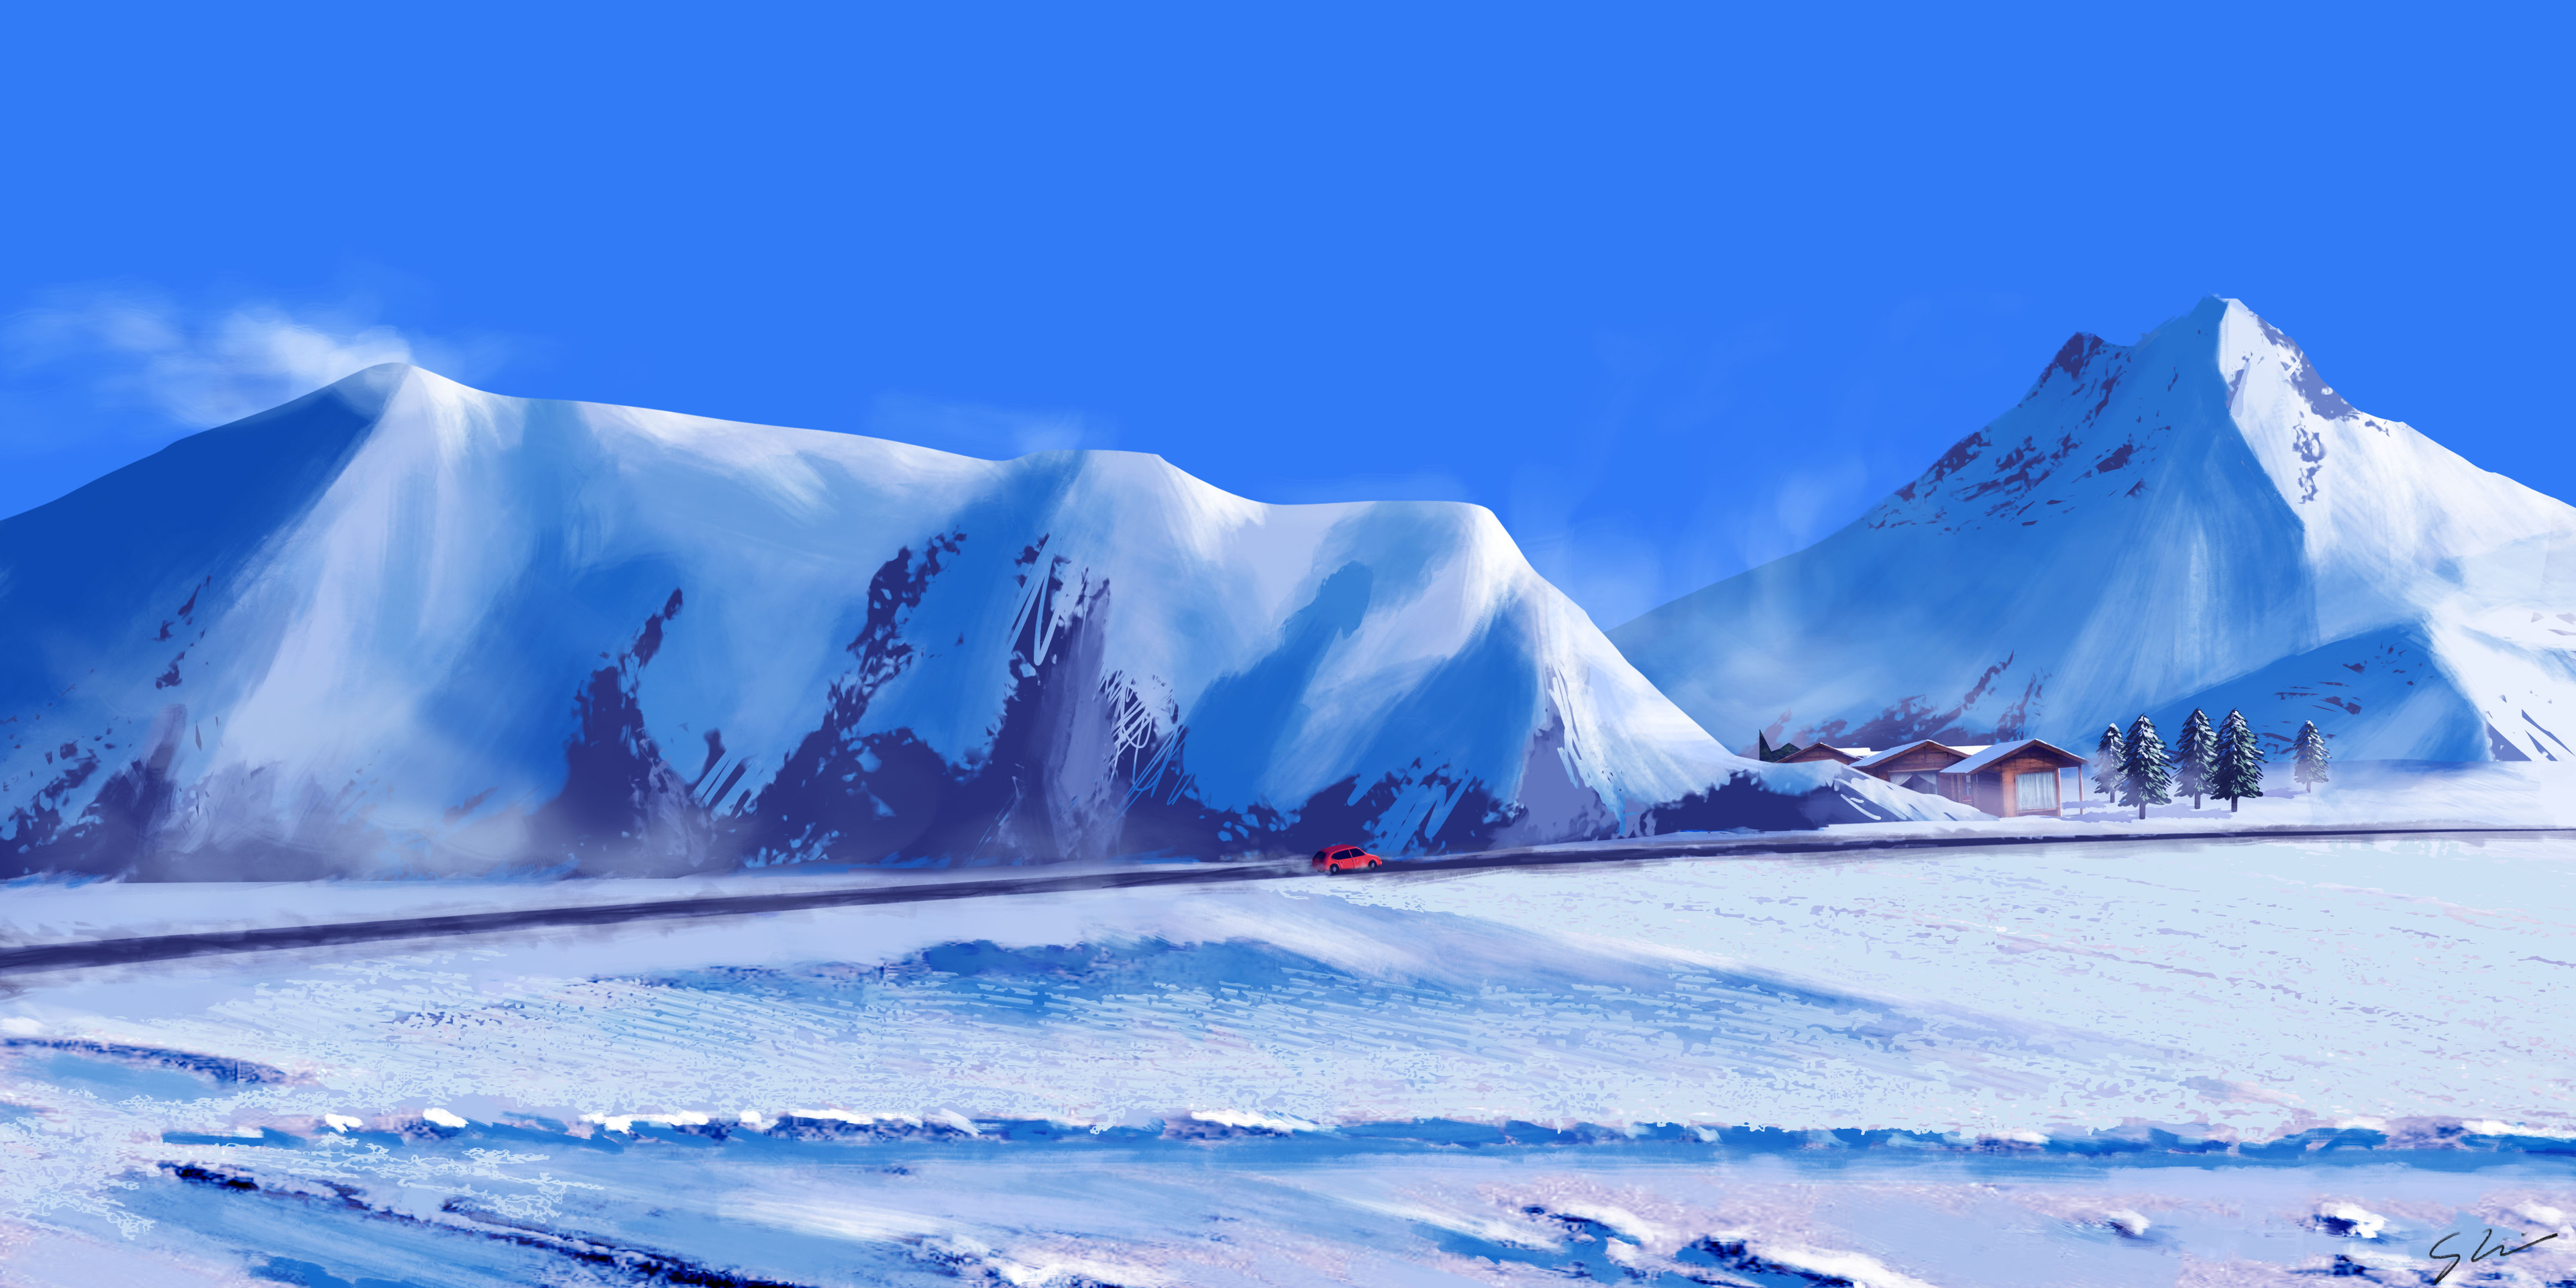 Wallpaper Mountains in the winter